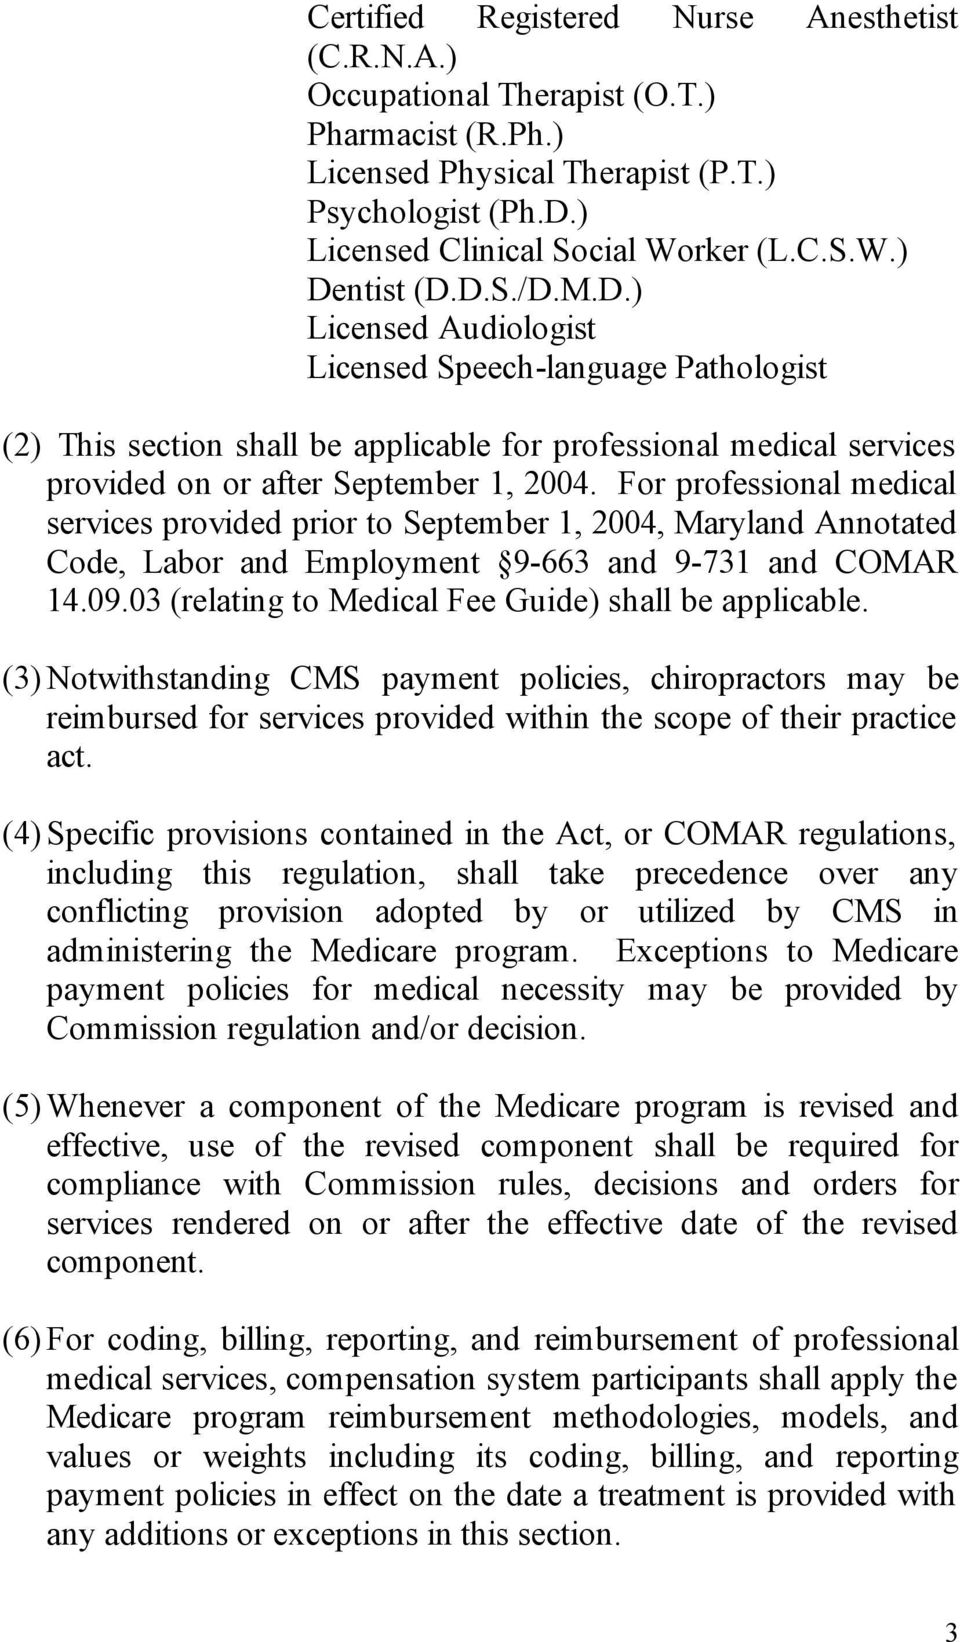 For professional medical services provided prior to September 1, 2004, Maryland Annotated Code, Labor and Employment 9-663 and 9-731 and COMAR 14.09.